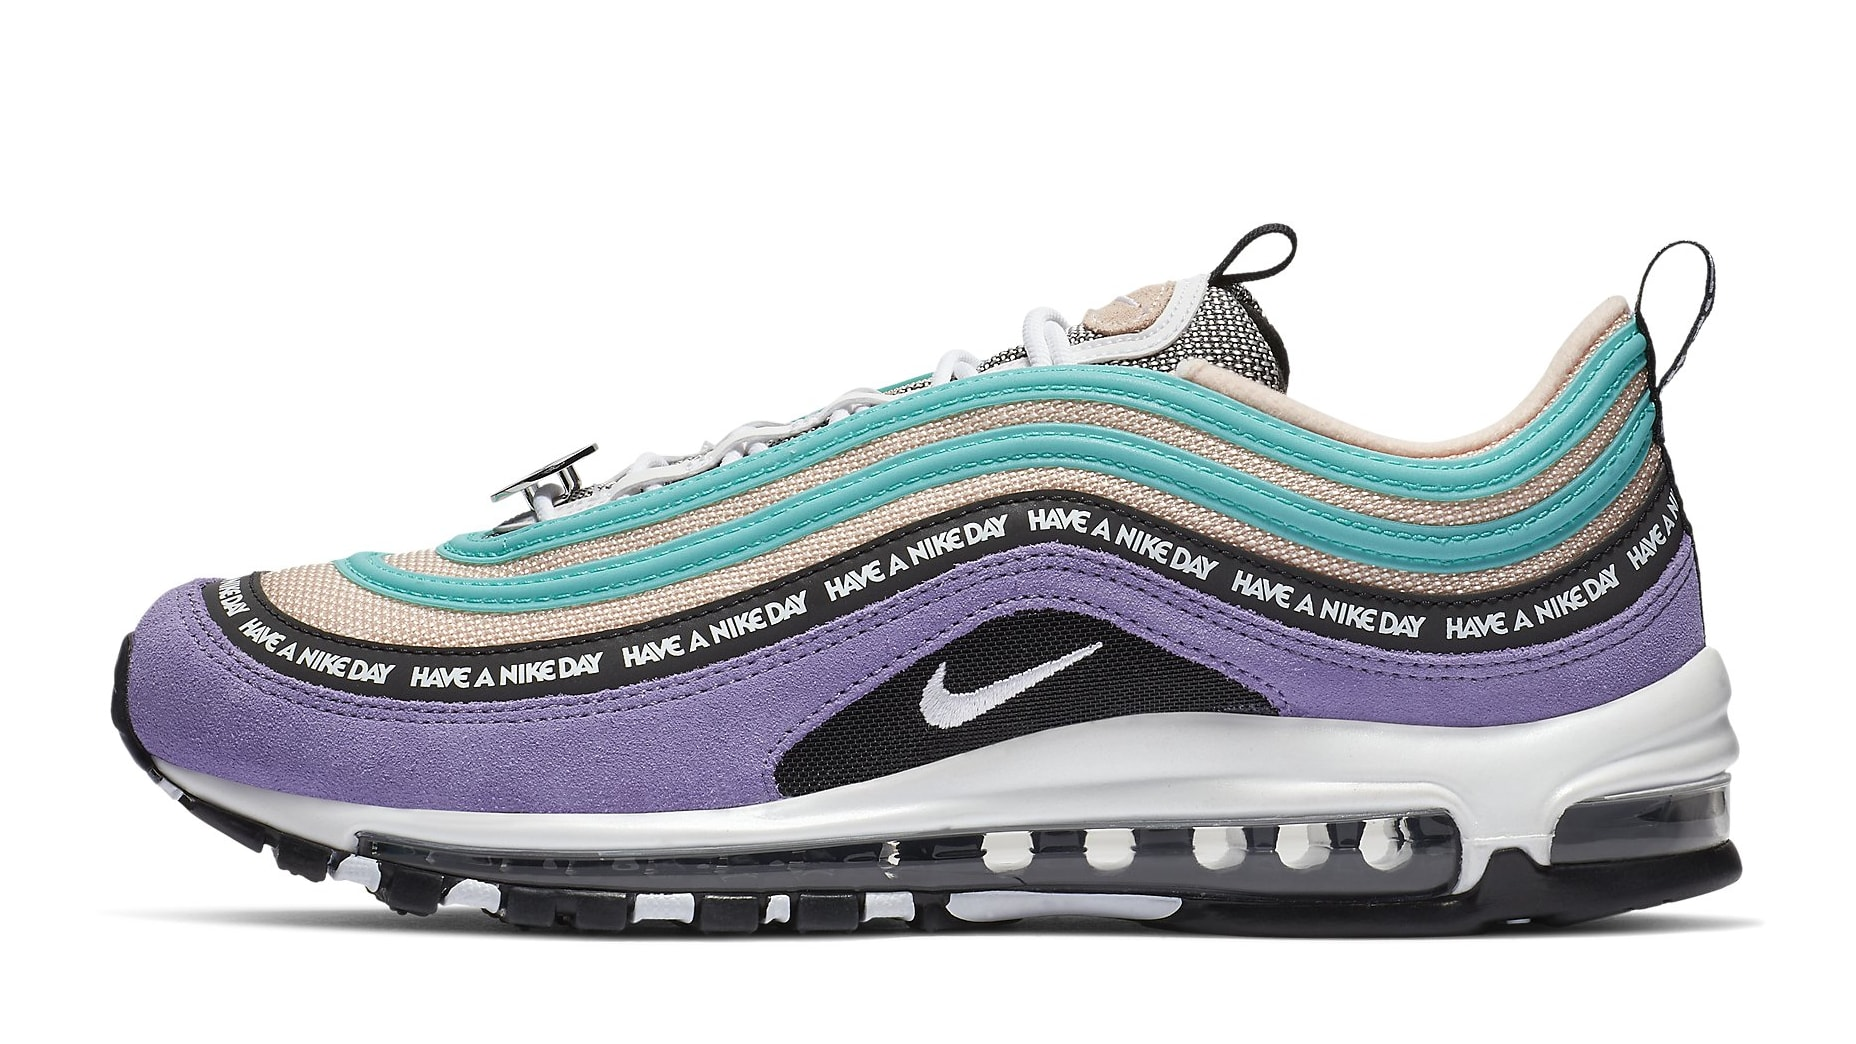 nike-air-max-97-have-a-nike-day-bq9130-500-lateral